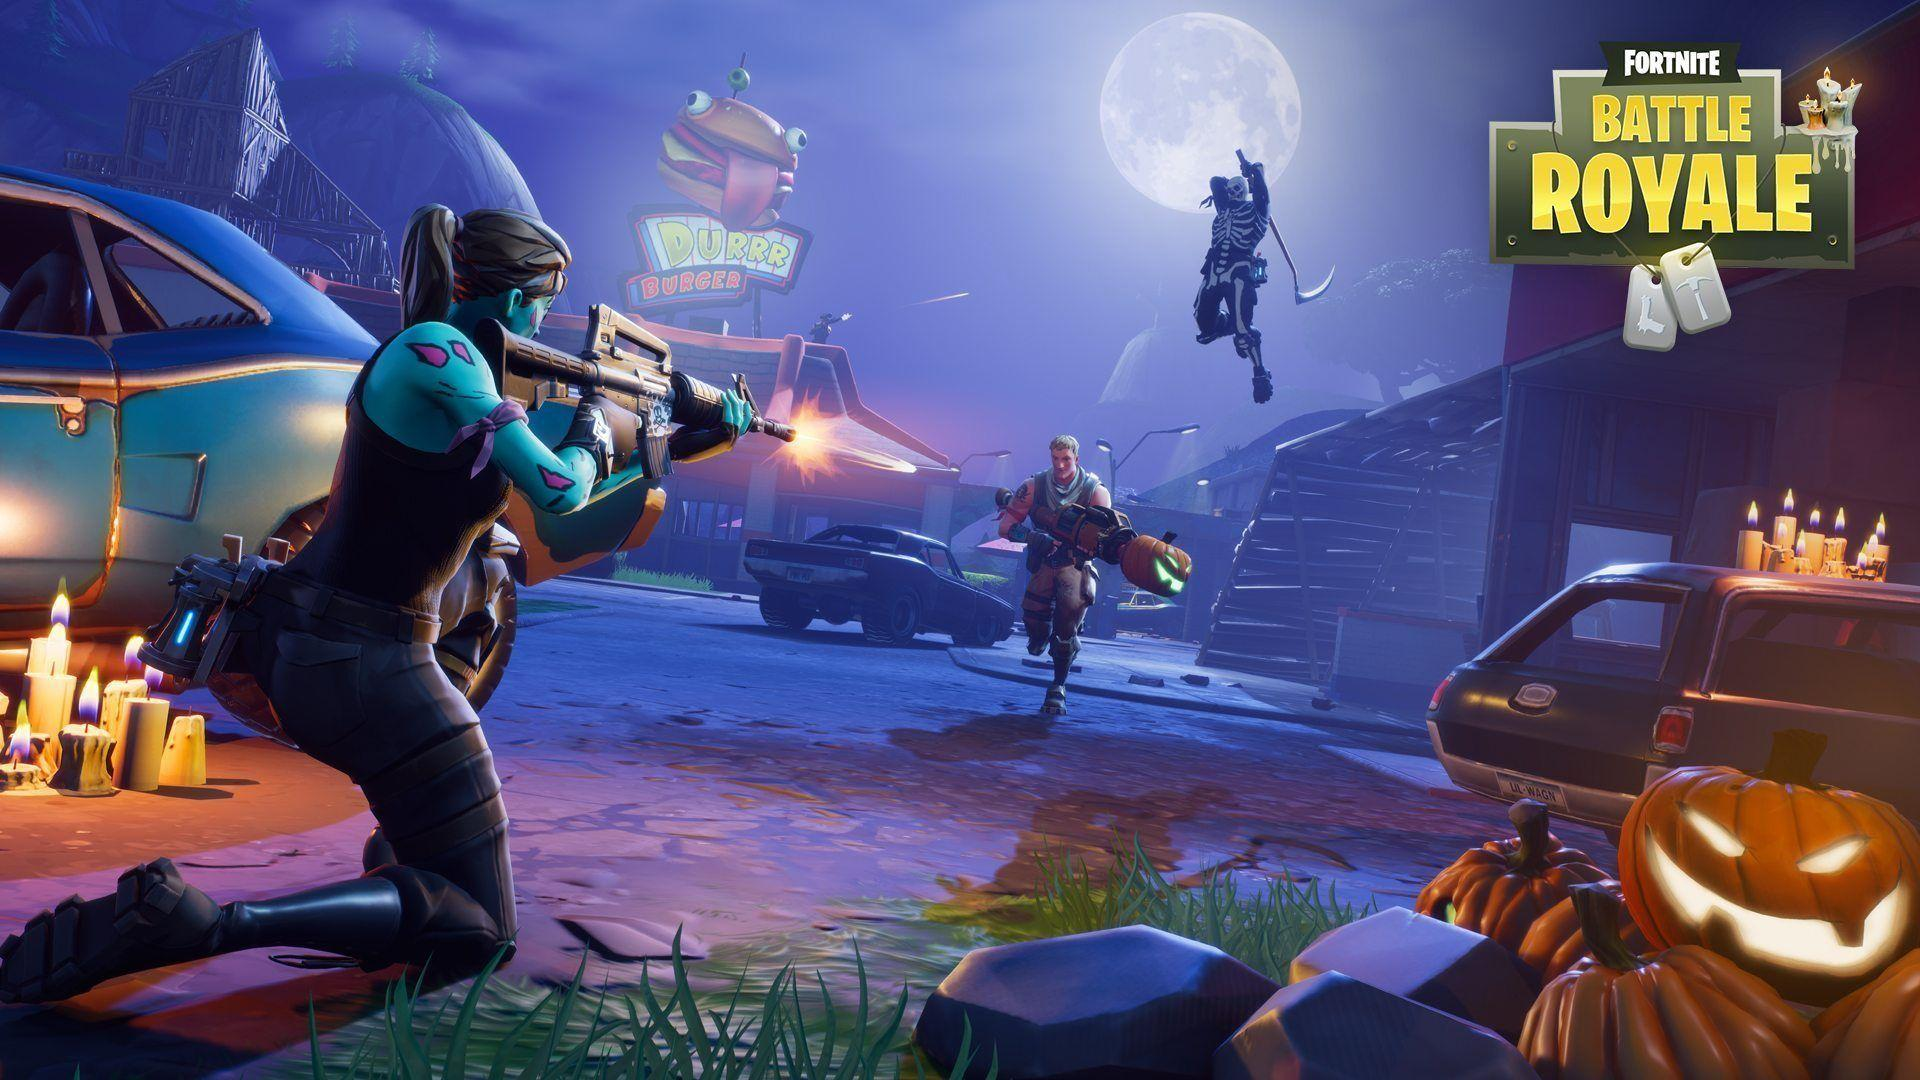 fortnite-battle-royale-game-wallpaper-62258-64192-hd-wallpapers ...